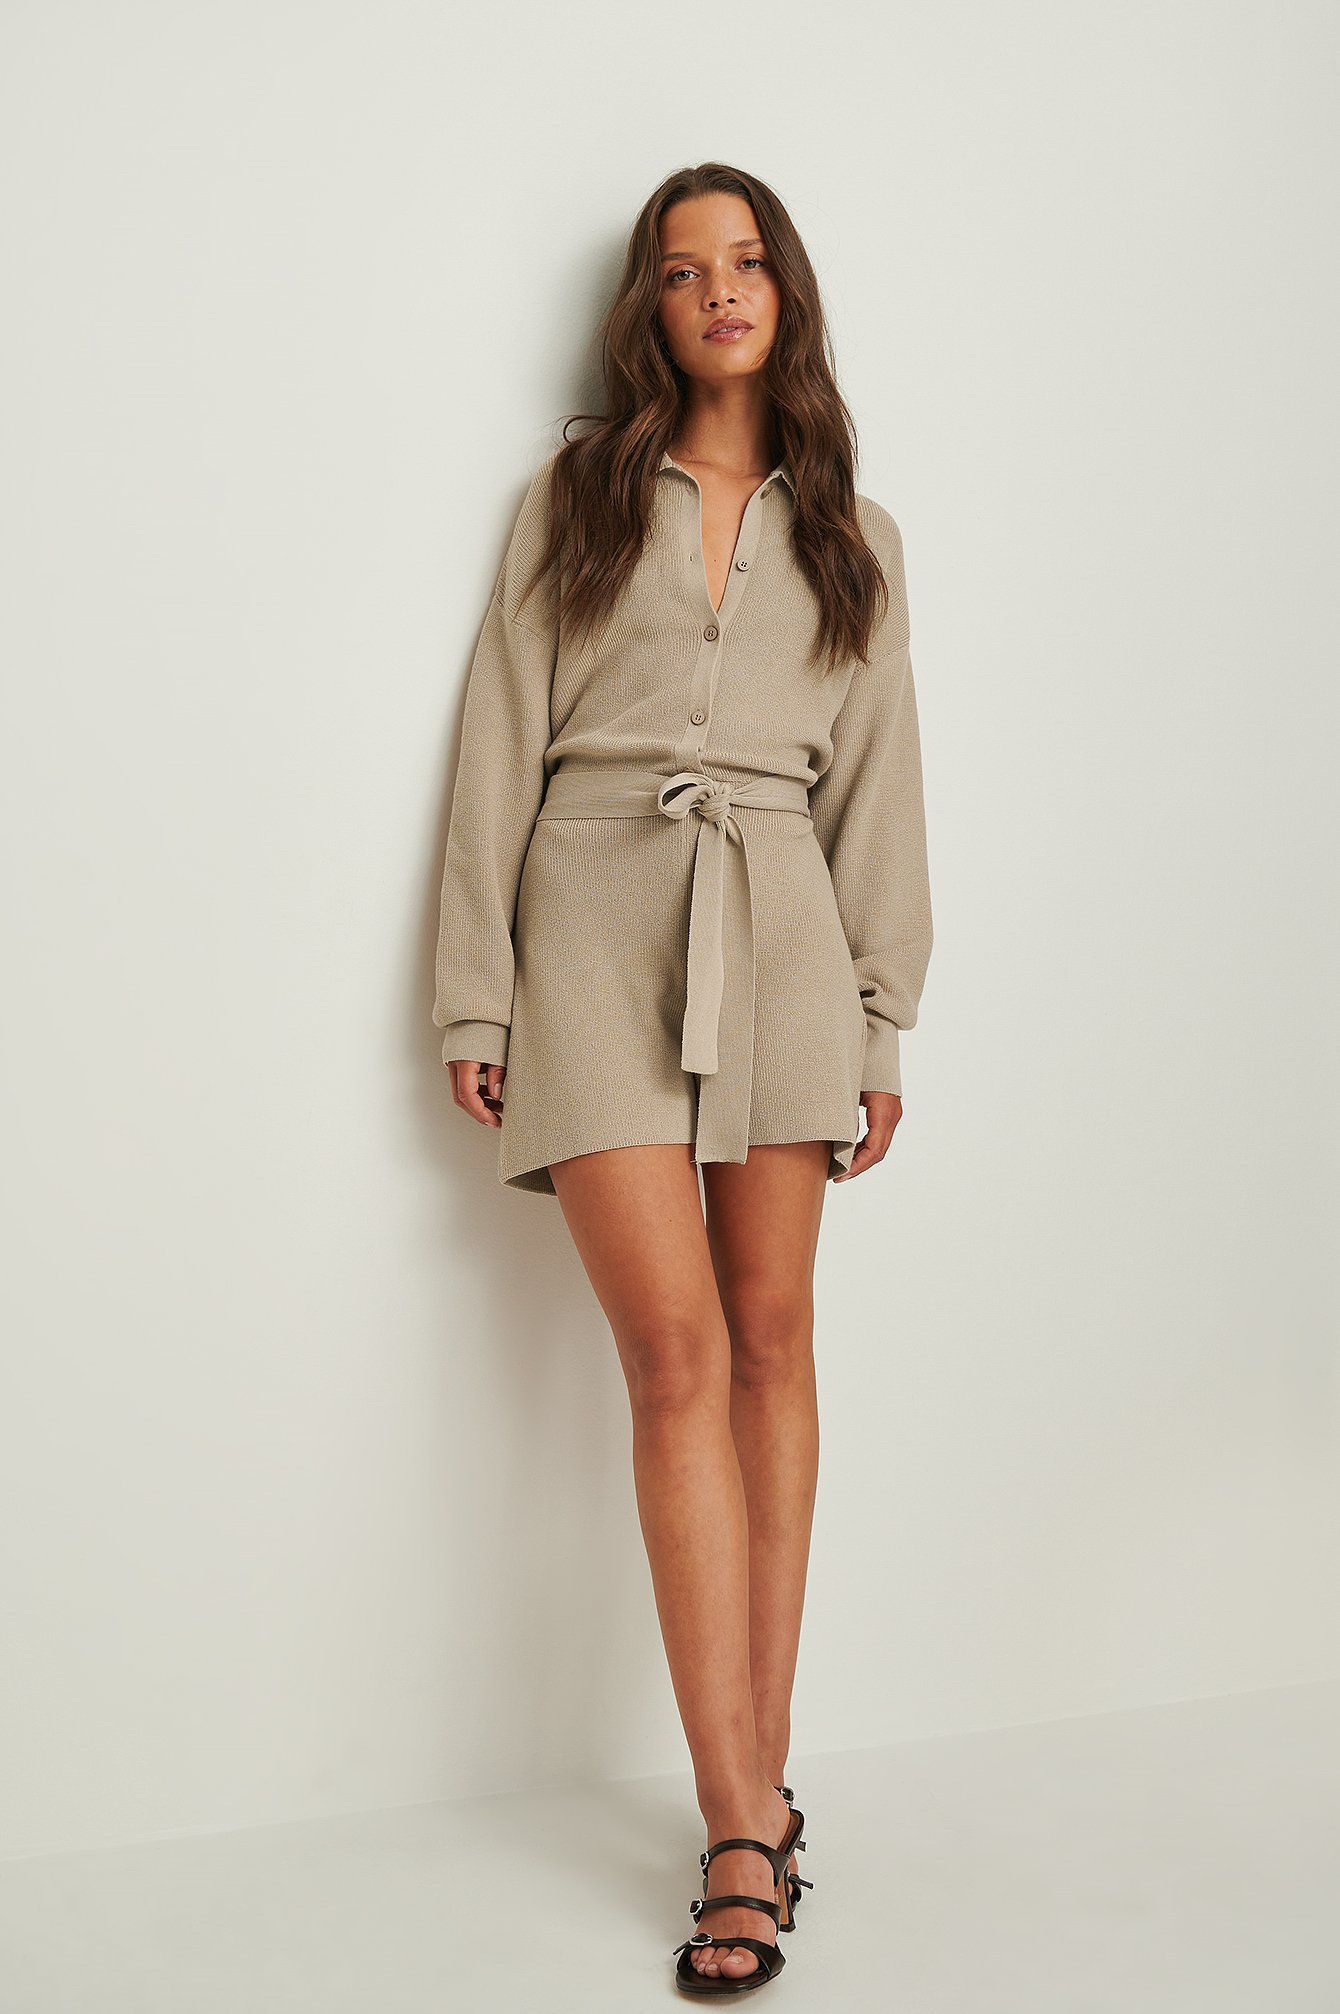 Knitted Belted Playsuit 59.95